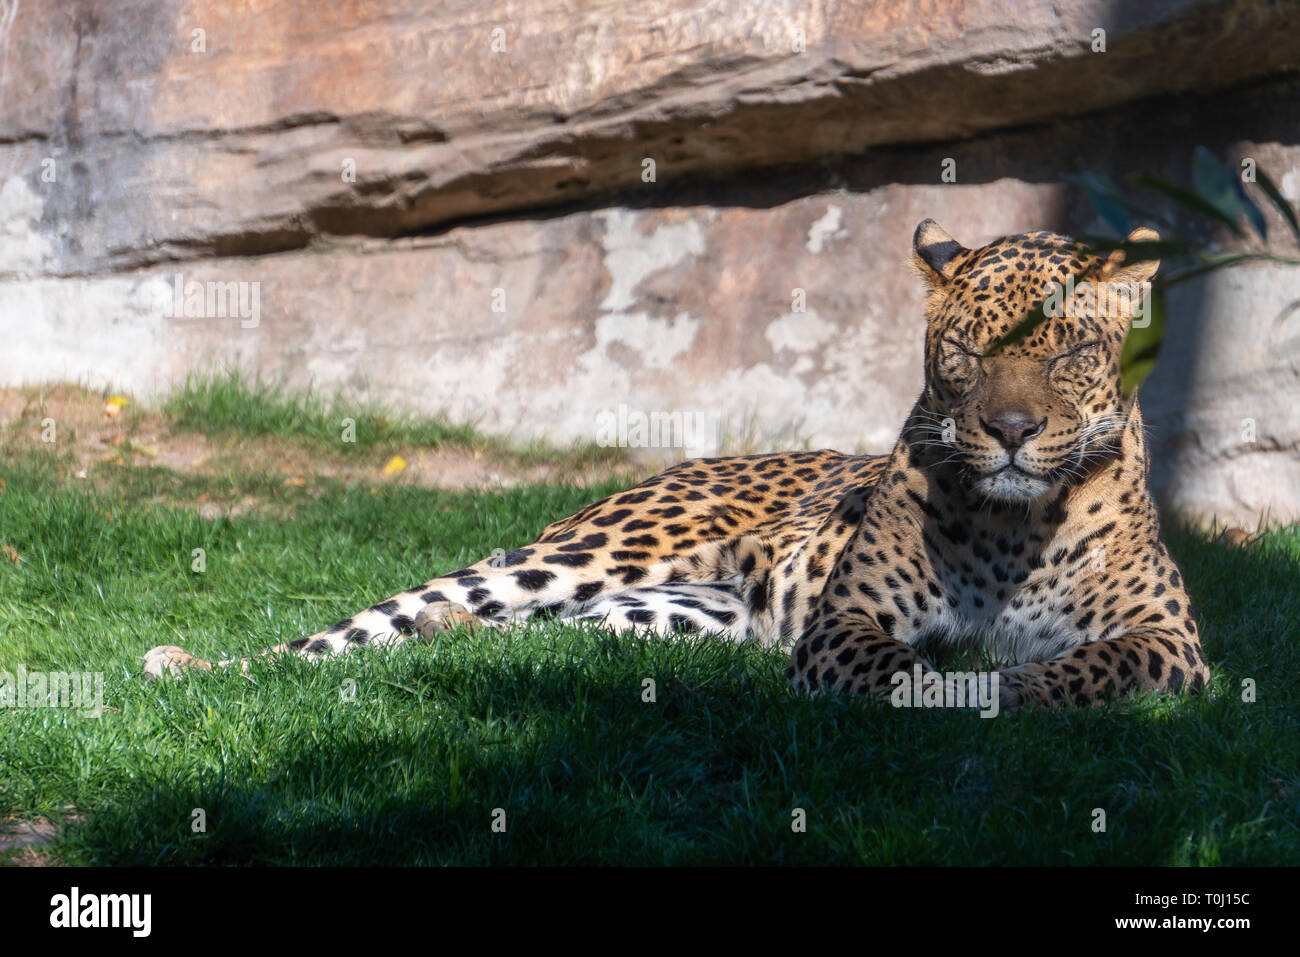 VALENCIA, SPAIN - FEBRUARY 26 : Leopard at the Bioparc in Valencia Spain on February 26, 2019 - Stock Image